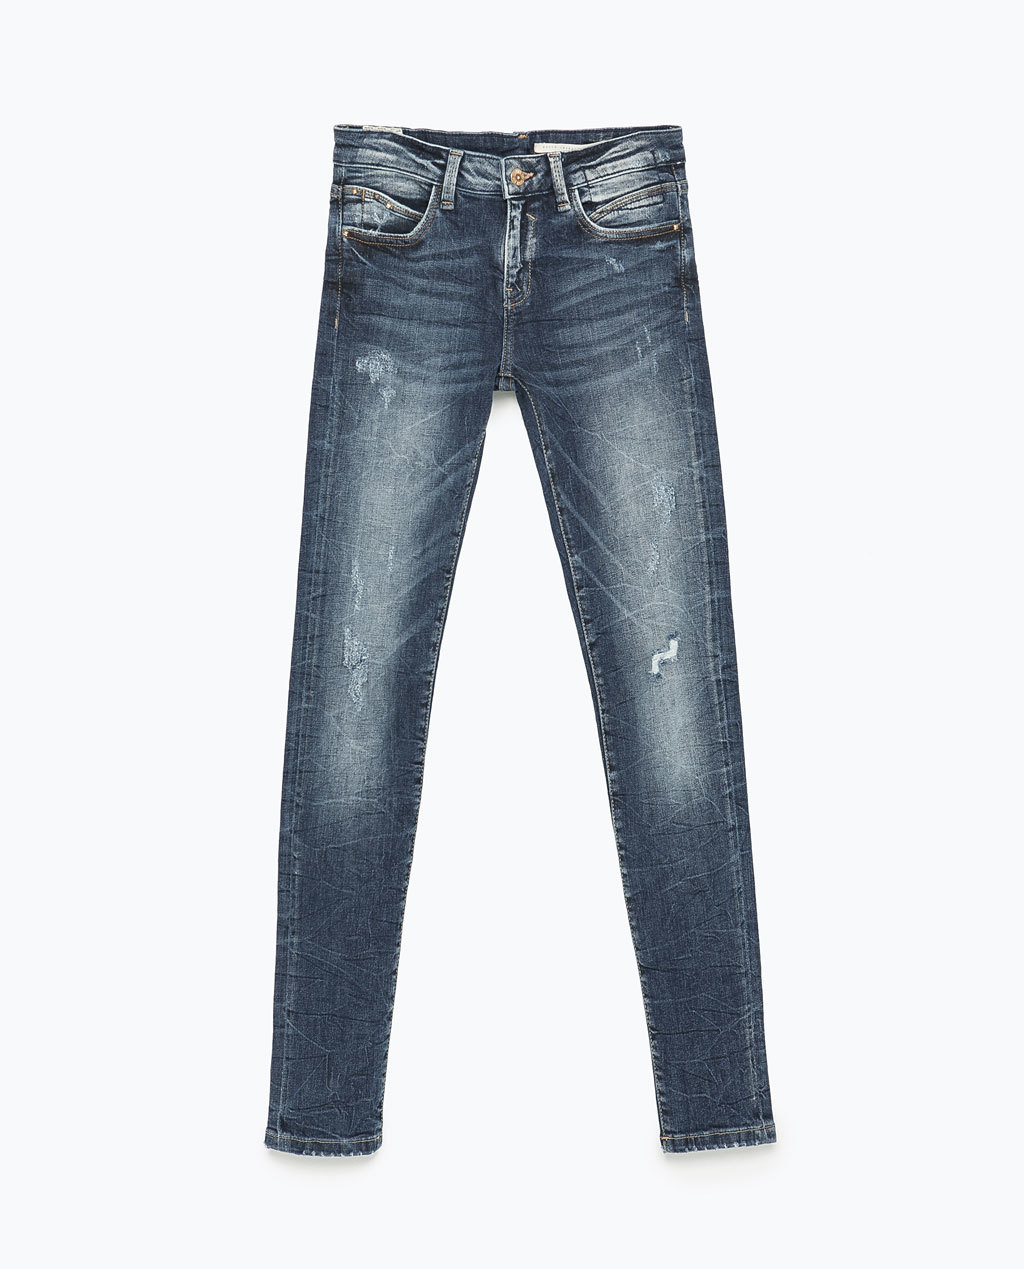 """Rebel"" Jeans - style: skinny leg; length: standard; pattern: plain; waist: low rise; predominant colour: denim; occasions: casual; fibres: cotton - stretch; jeans detail: whiskering, washed/faded; texture group: denim; pattern type: fabric; season: s/s 2015; wardrobe: basic"